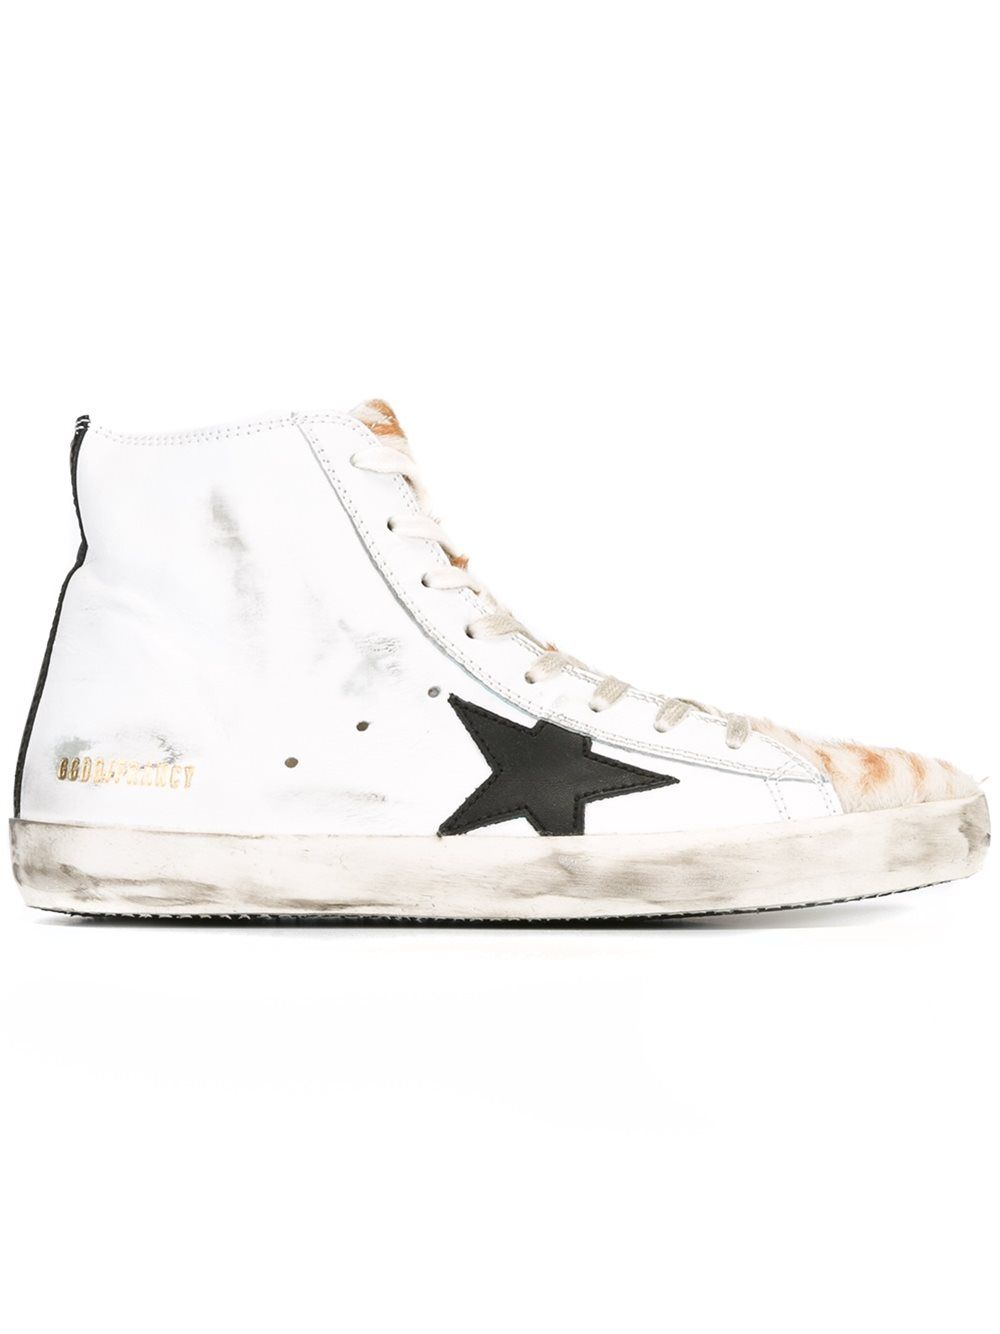 'francy' Calf From Leather Sneakers Deluxe White Hi Top Golden Goose WDEH29I